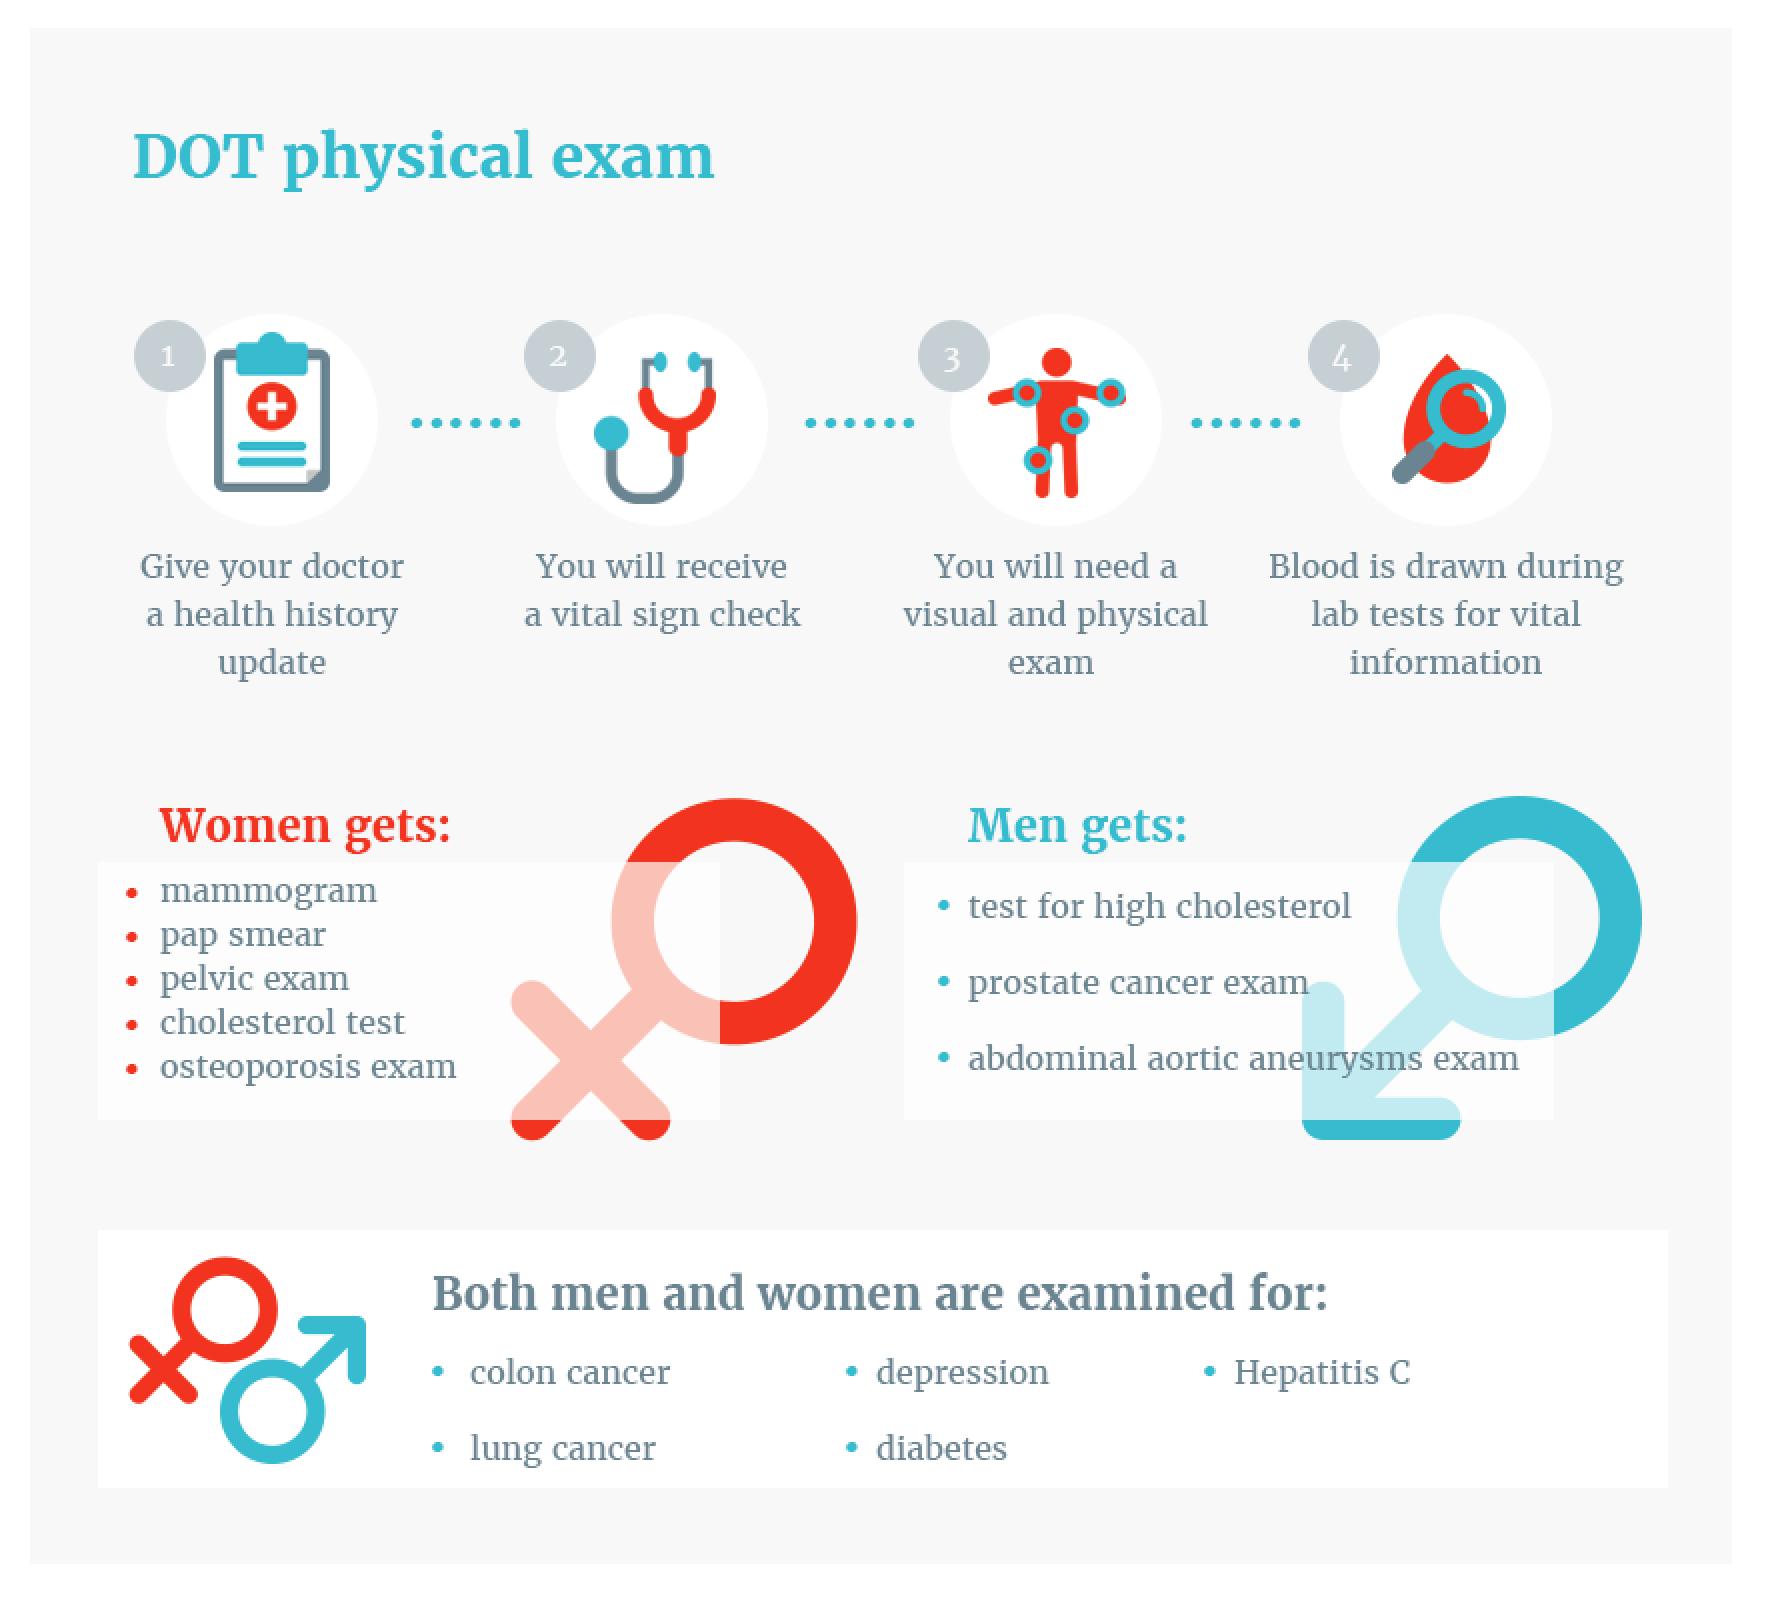 What to expect during DOT physical exam